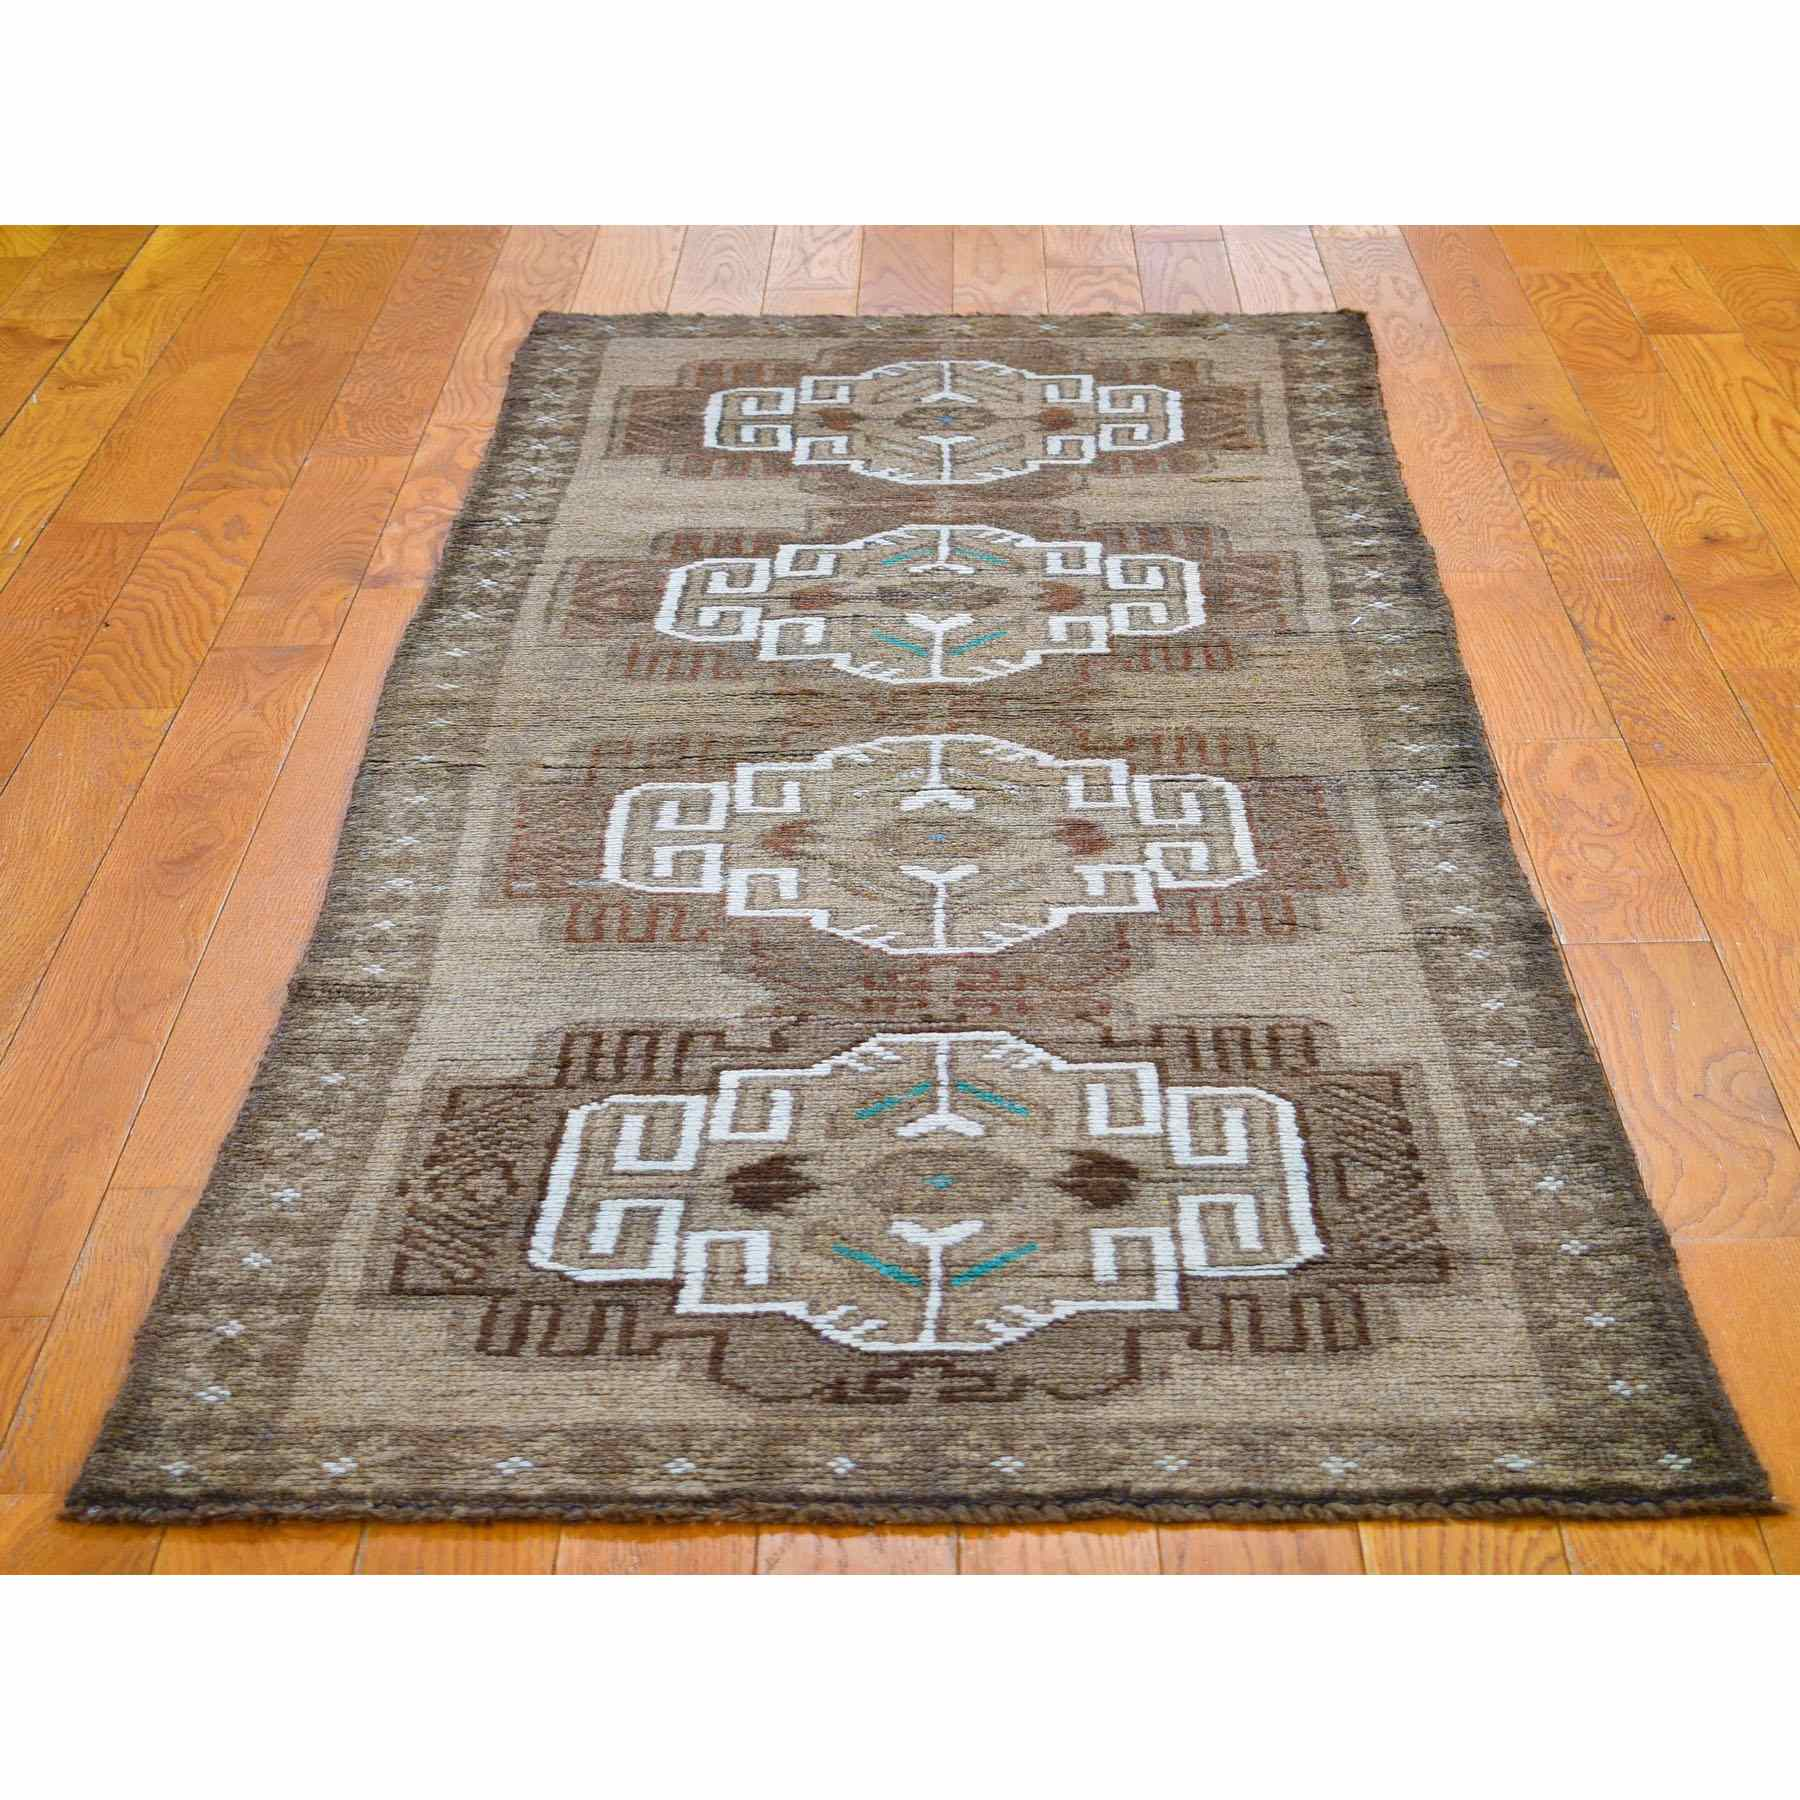 Tribal-Geometric-Hand-Knotted-Rug-246055